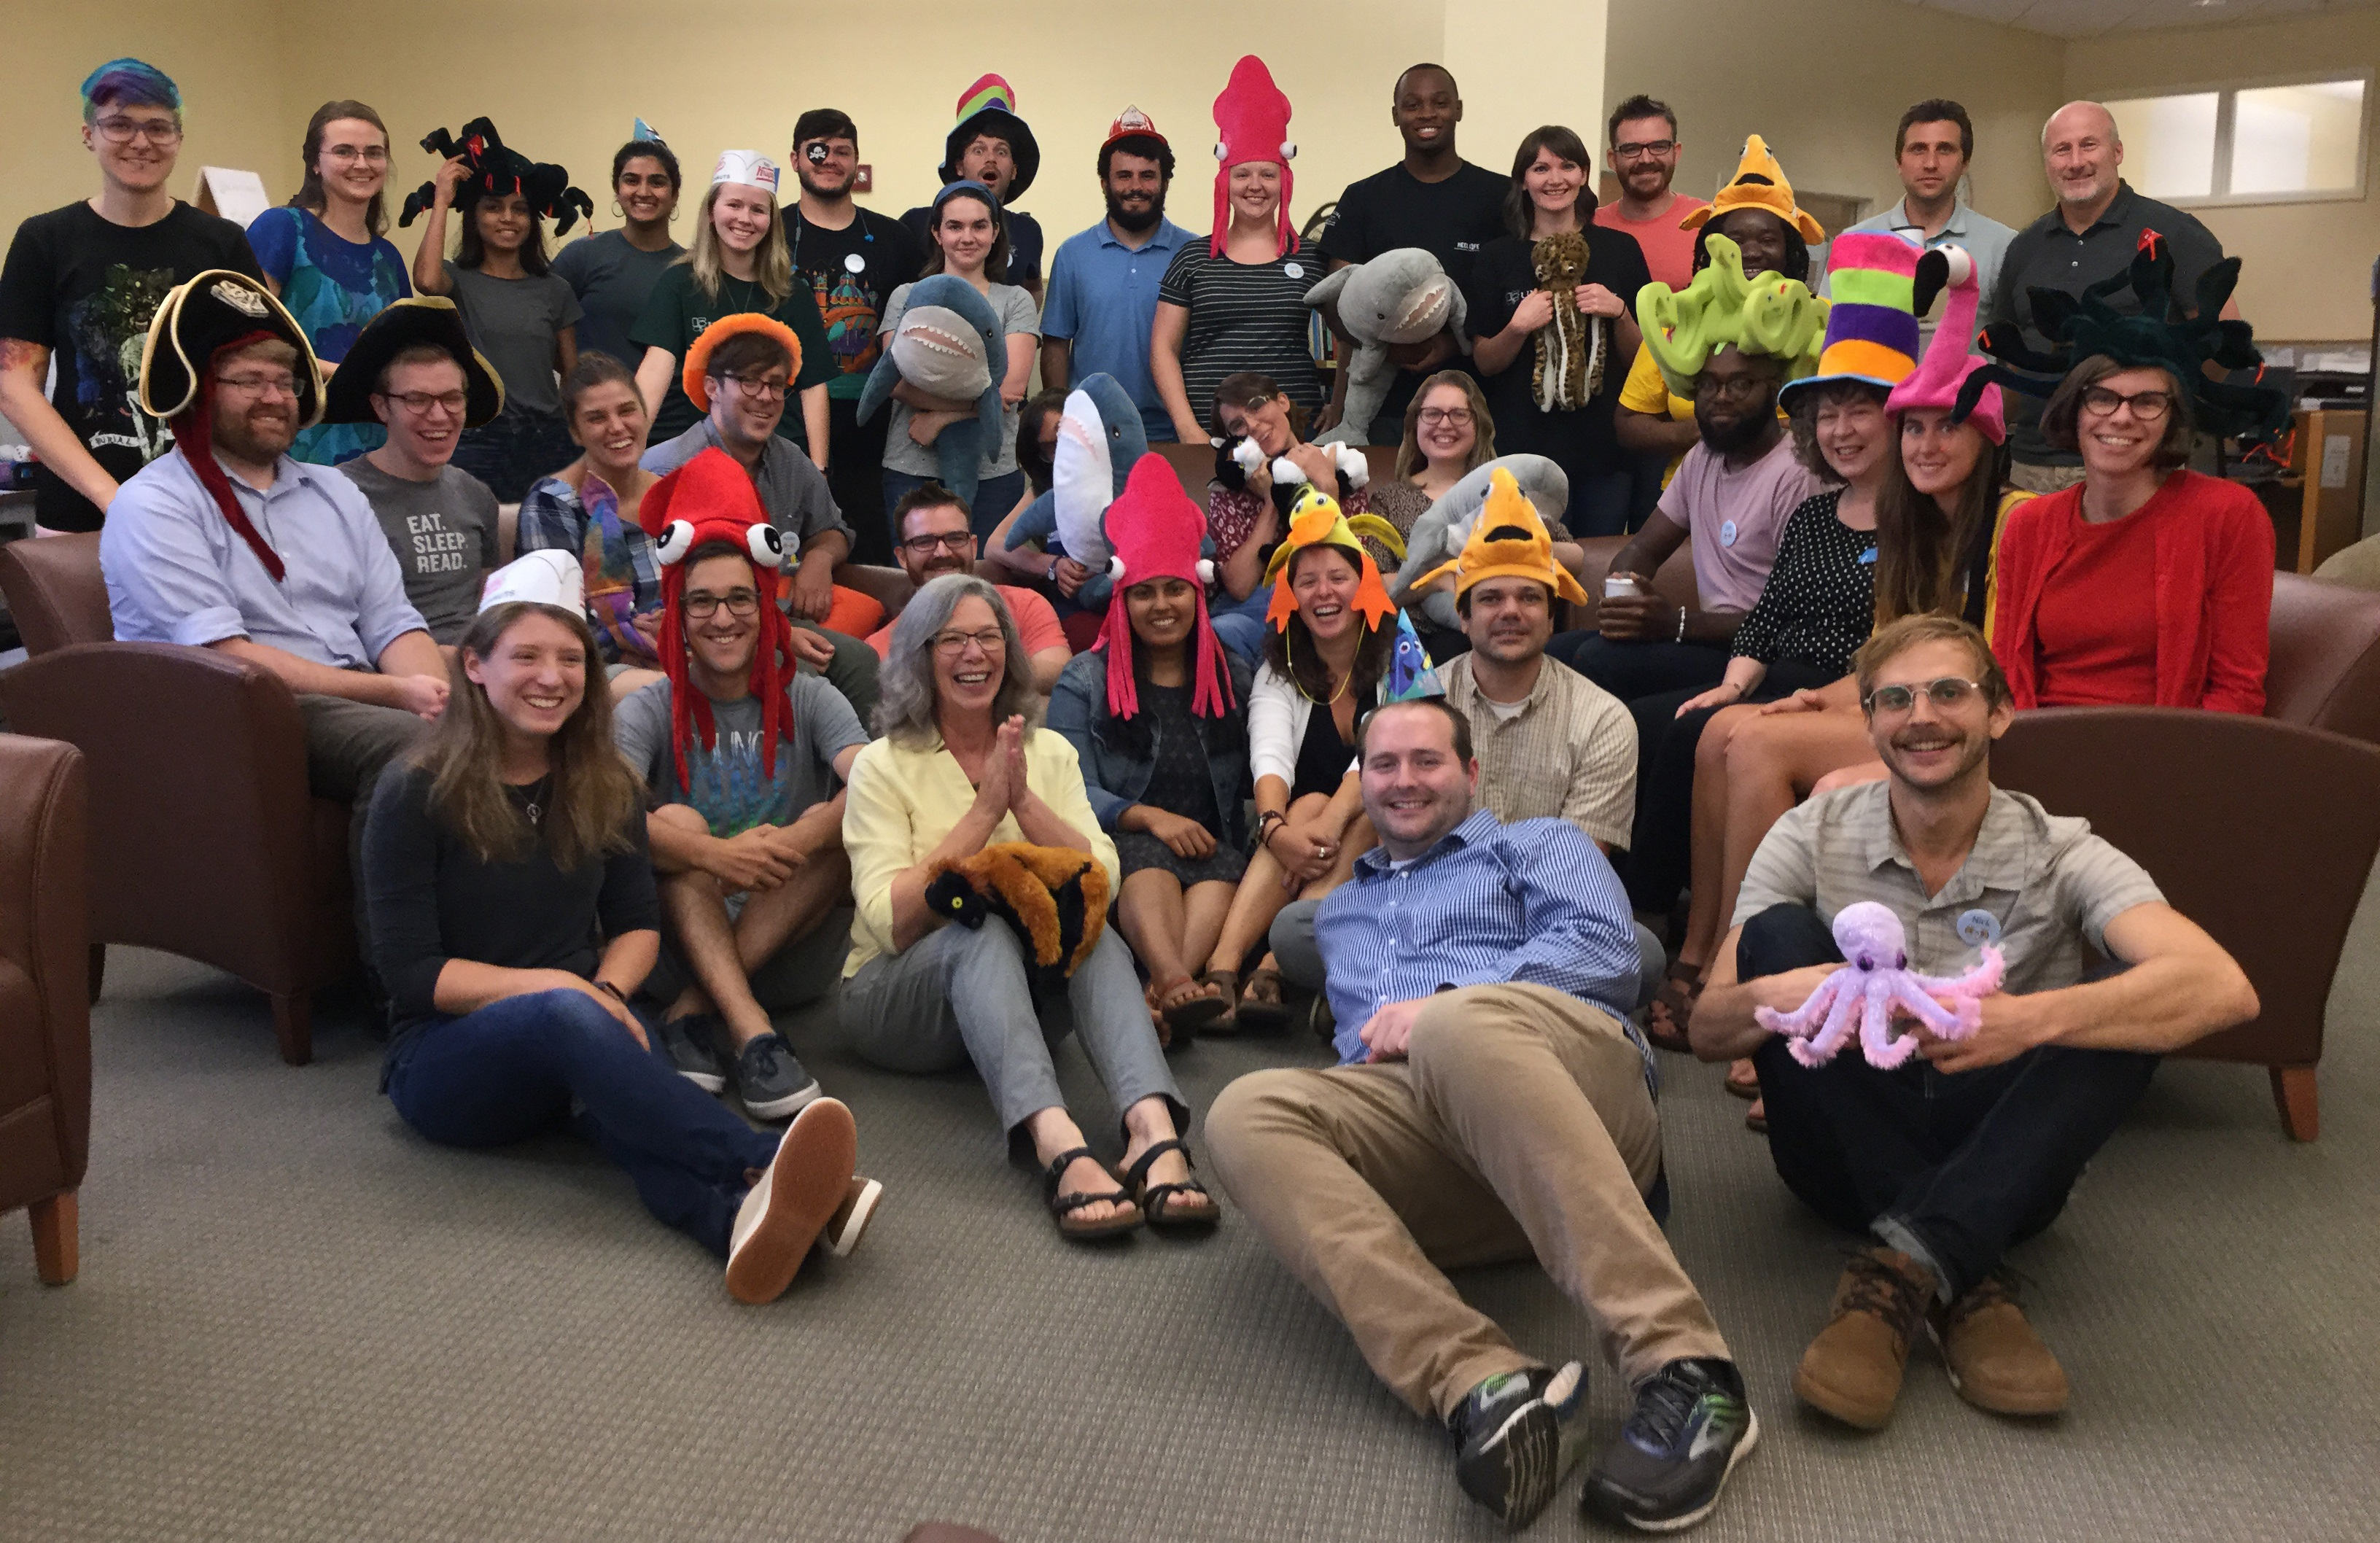 staff assembled and wearing funny hats